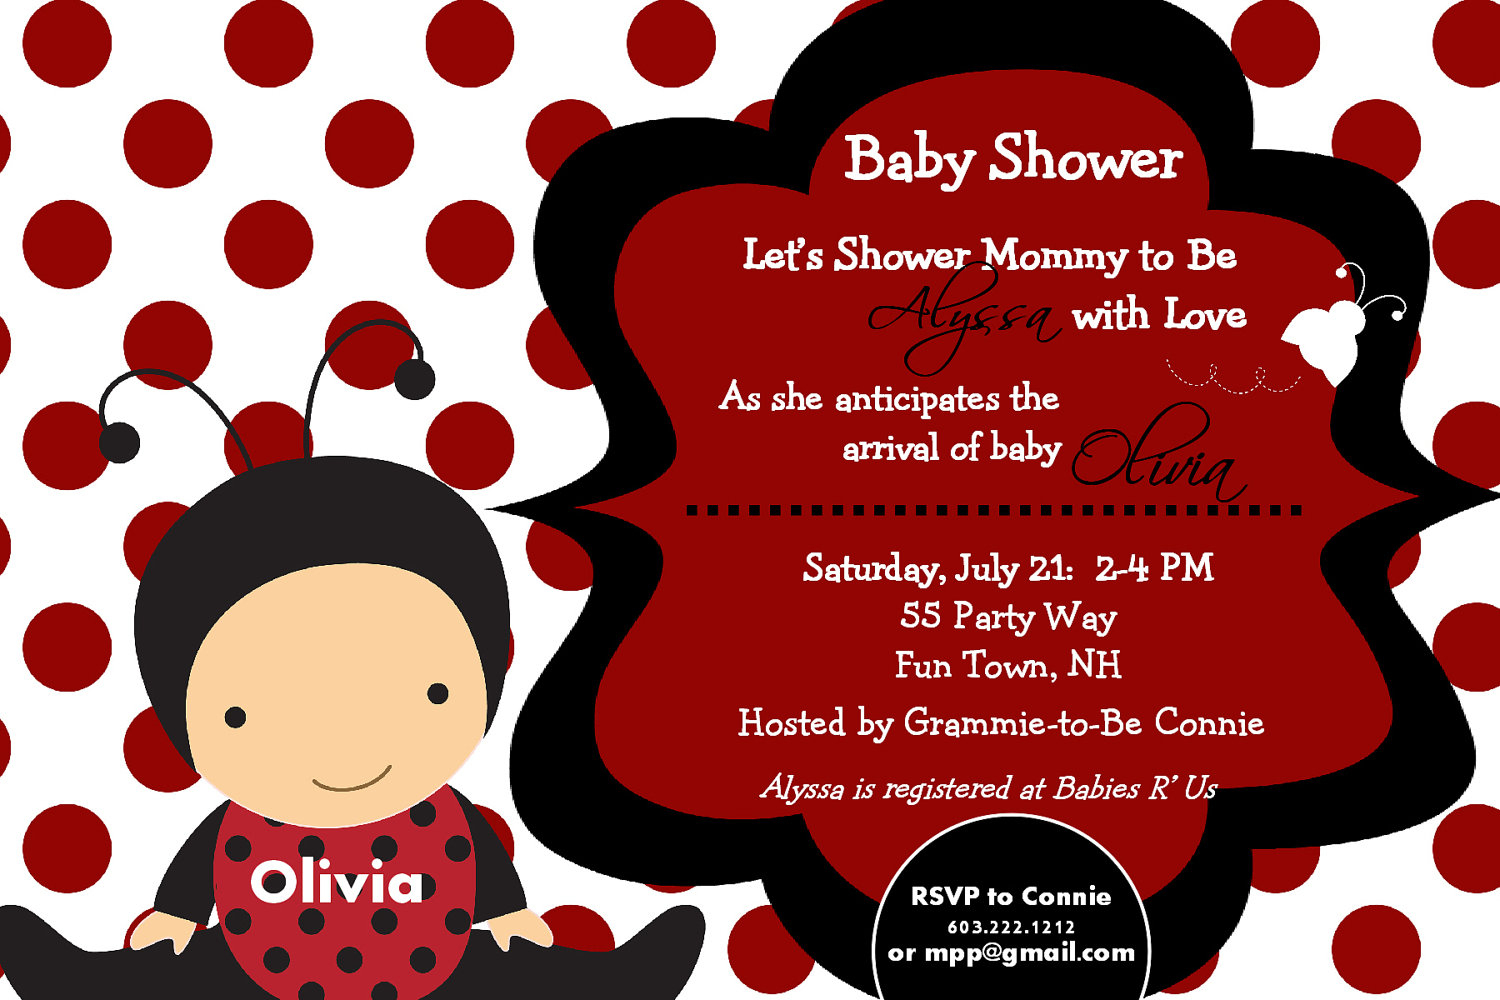 Ladybug Baby Shower Invitations Ladybug Baby Shower Invitations Of - Free Printable Ladybug Baby Shower Invitations Templates